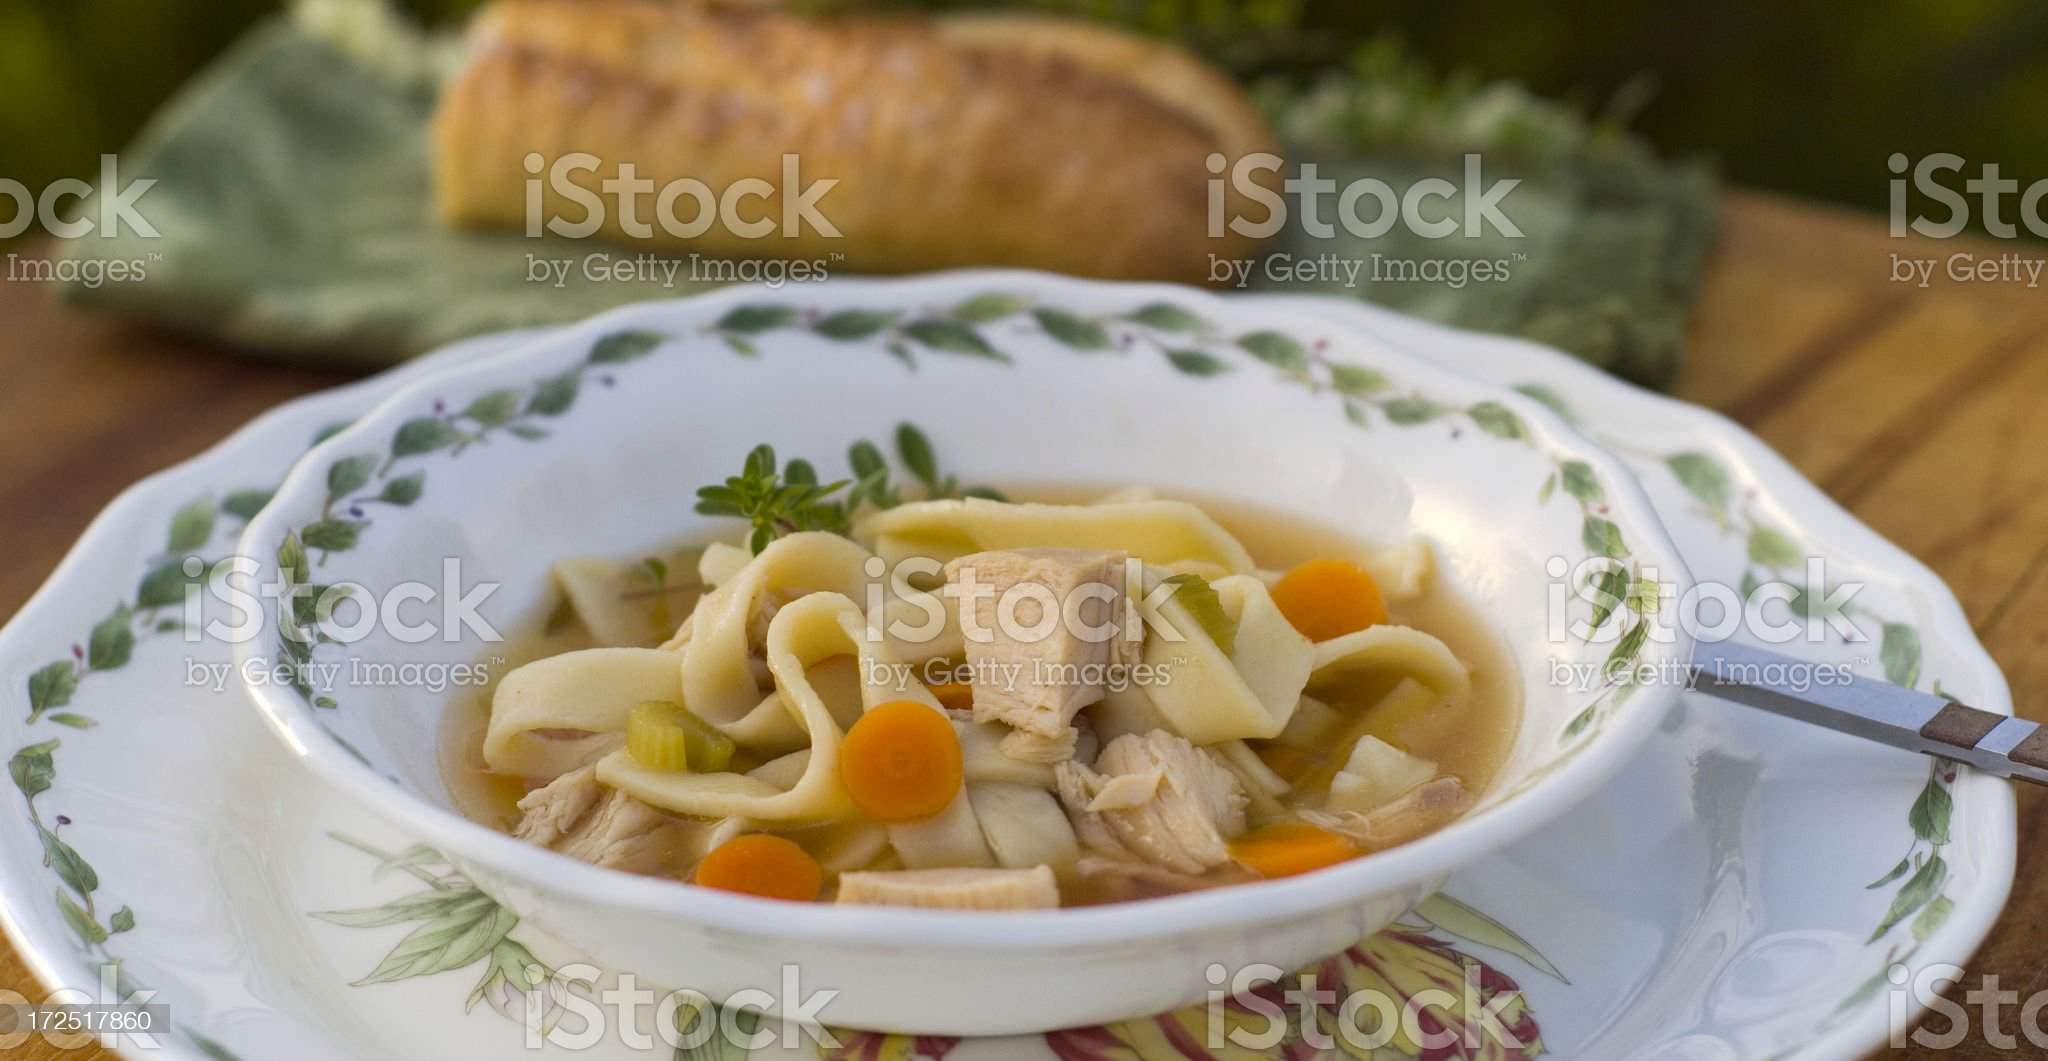 Homemade Leftover Food; Chicken or Turkey Noodle Soup Dinner royalty-free stock photo